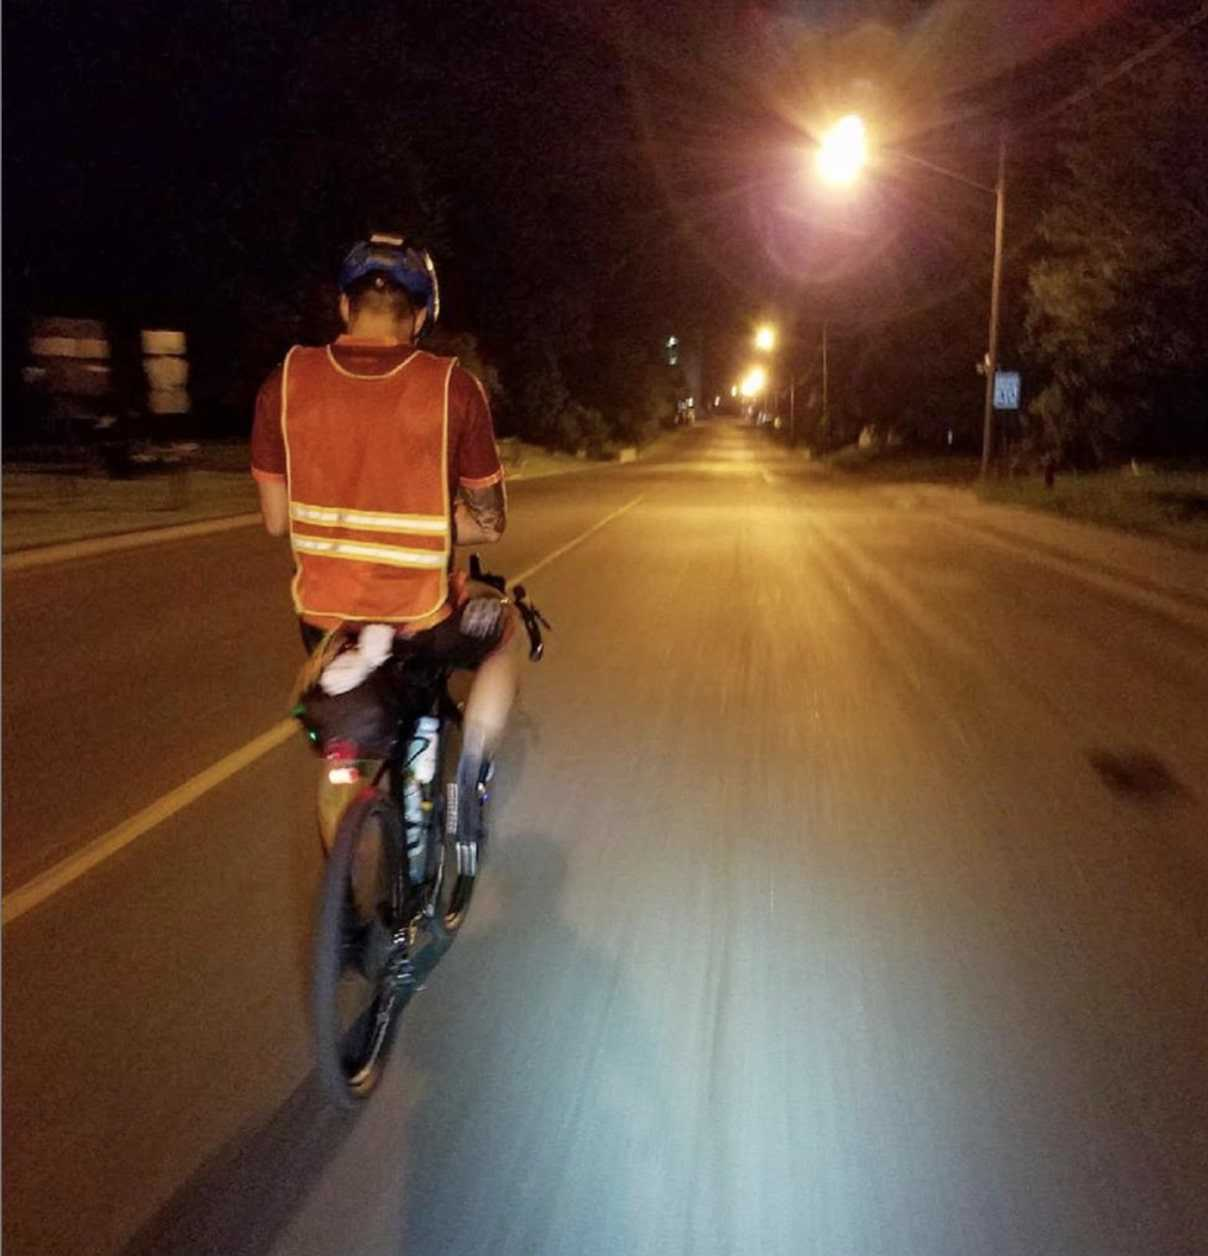 Cyclist wears a reflective vest while riding a bike down a city street at night under the street lights